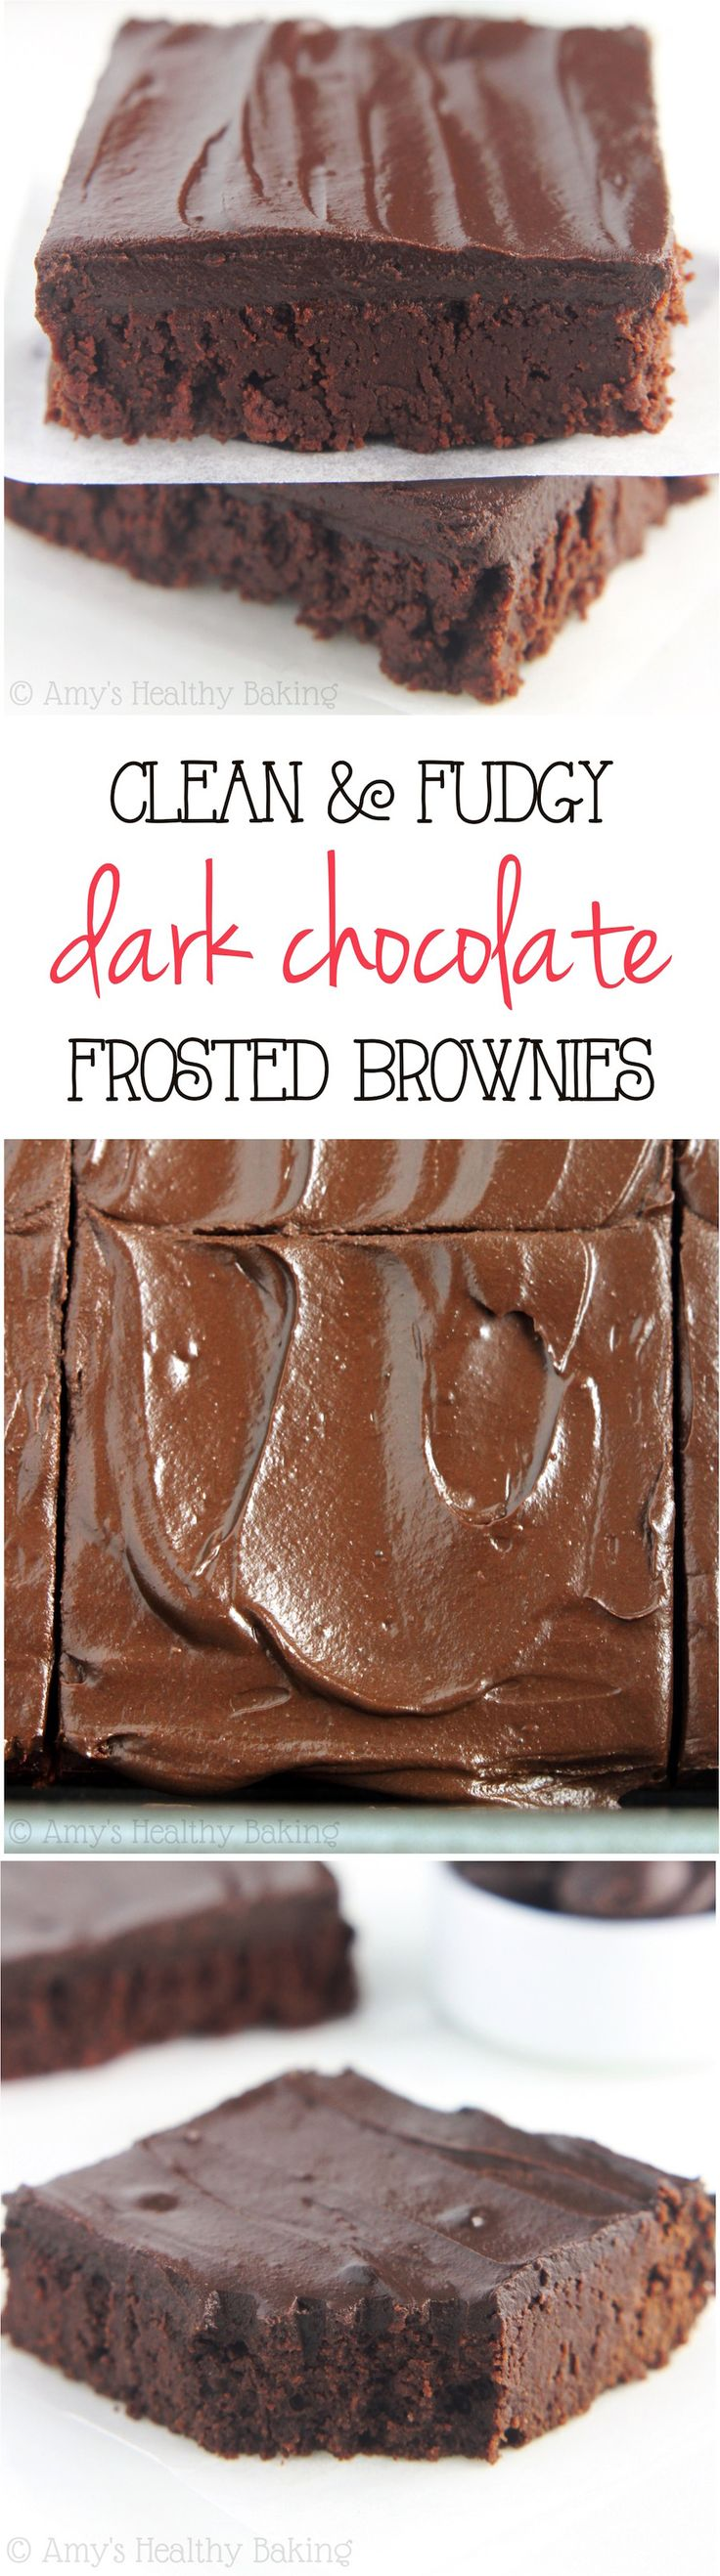 Clean-Eating Fudgy Dark Chocolate Frosted Brownies -- skinny brownies don't taste healthy. They're insanely rich, as easy as a box mix & only 100 calories!